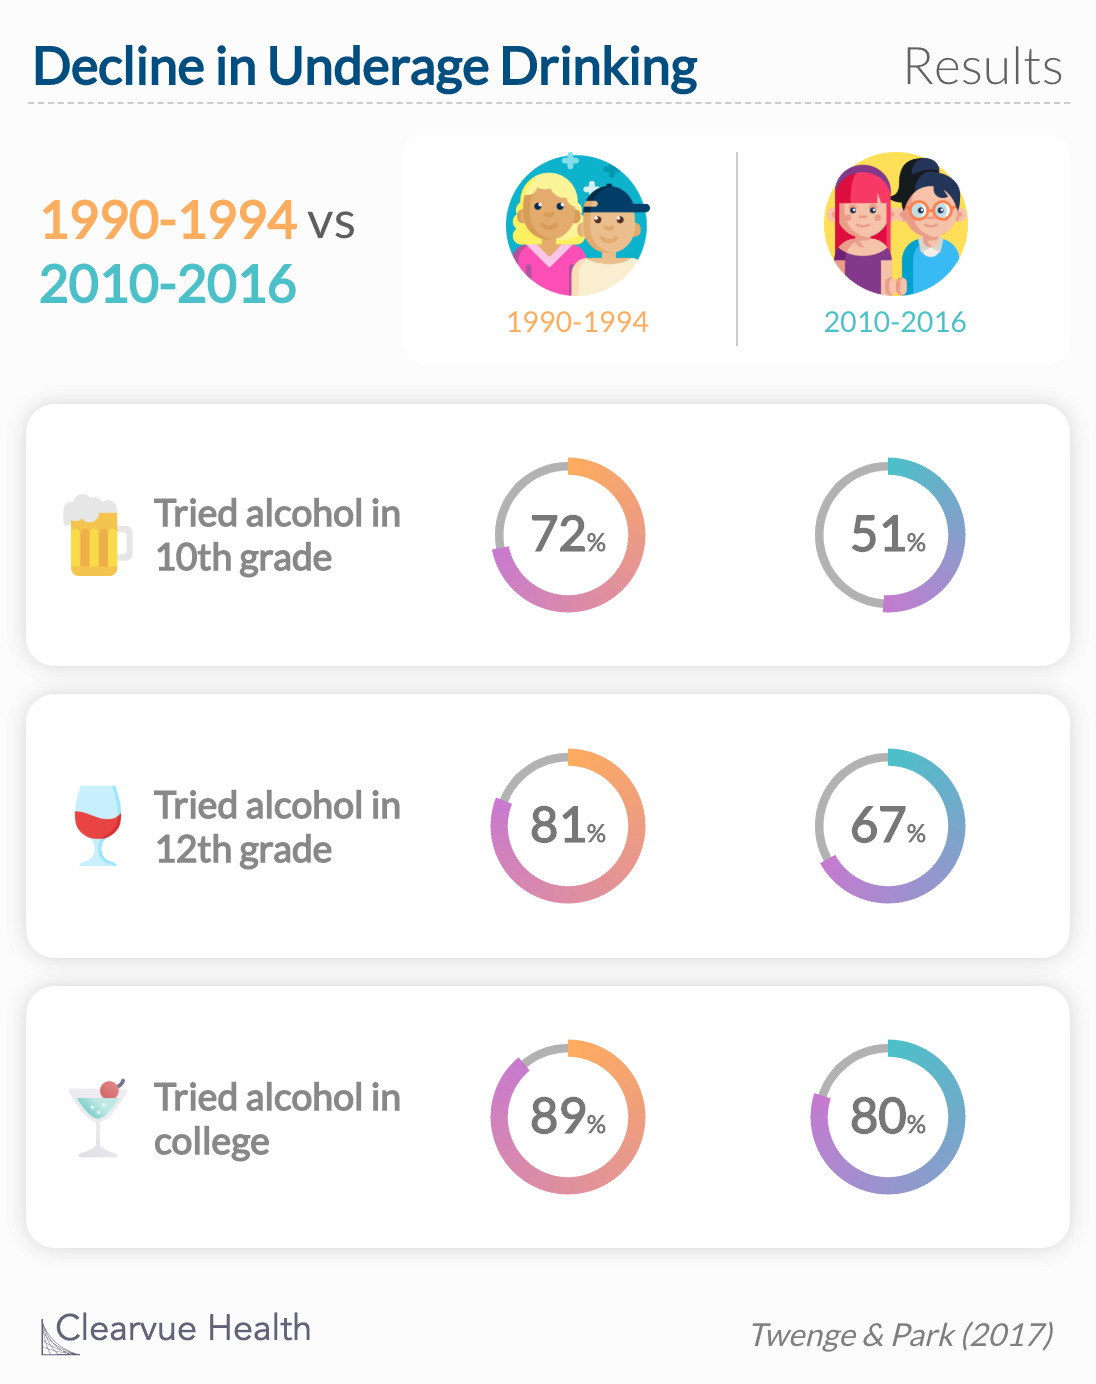 Fewer high school and college students reported ever drinking alcohol in recent years compared to students from previous generations.